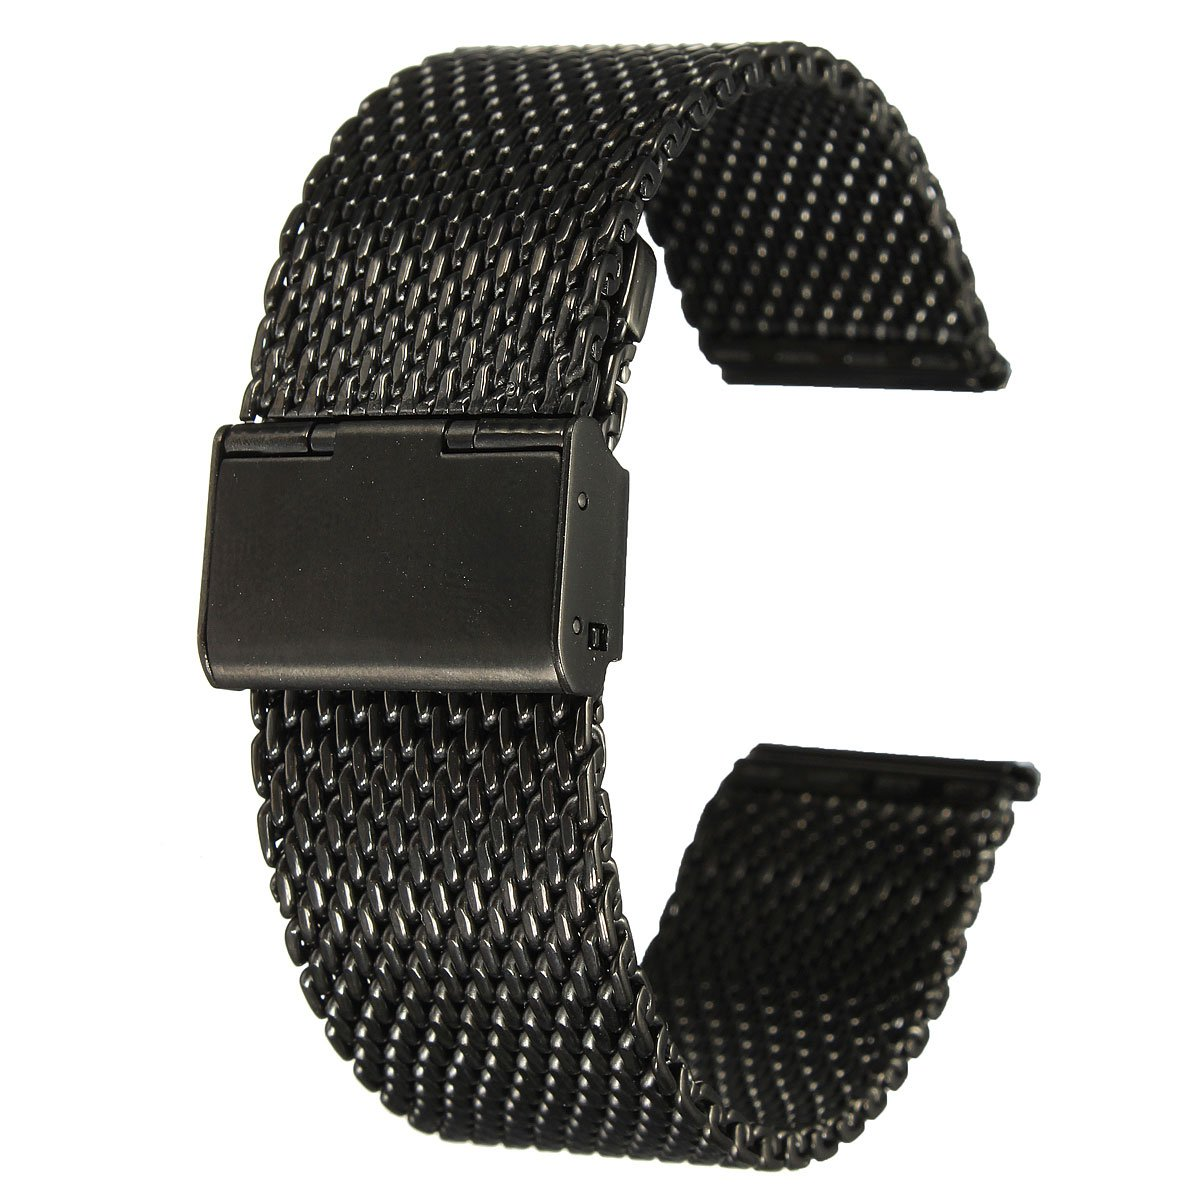 Practical 22mm Unisex Stainless Steel Chainmail Watch Strap Band New Year Gift black